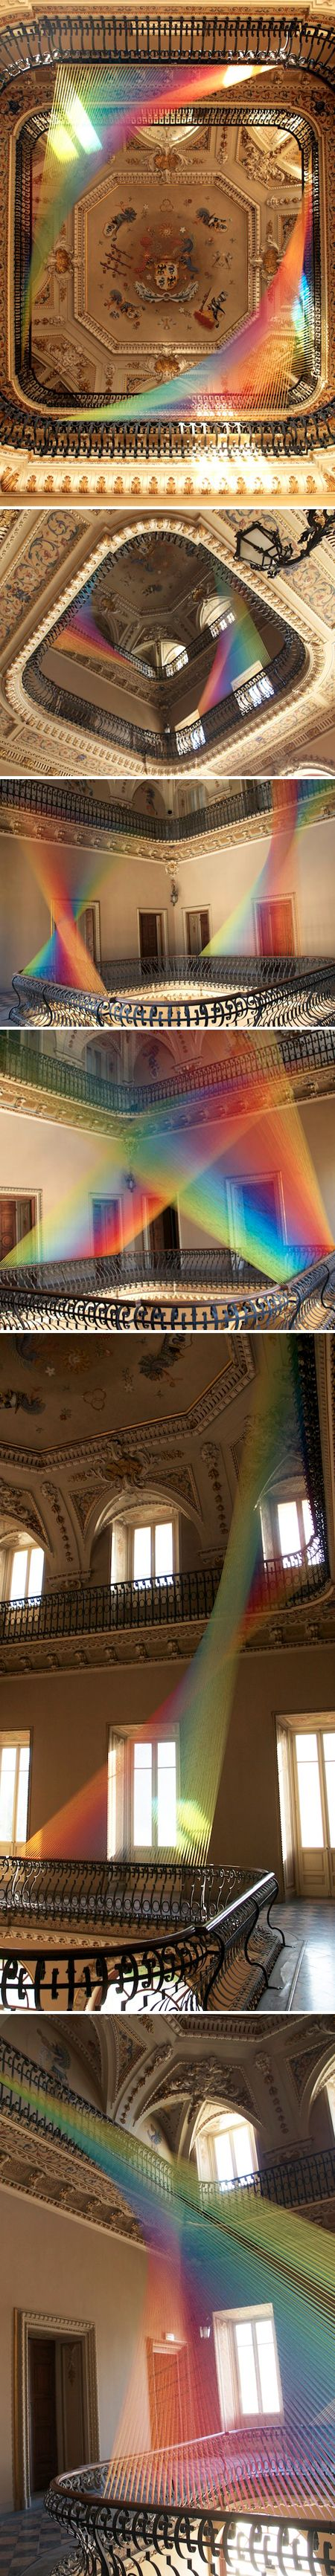 First Look: Gabriel Dawe's Stunning New Thread Art in Italy